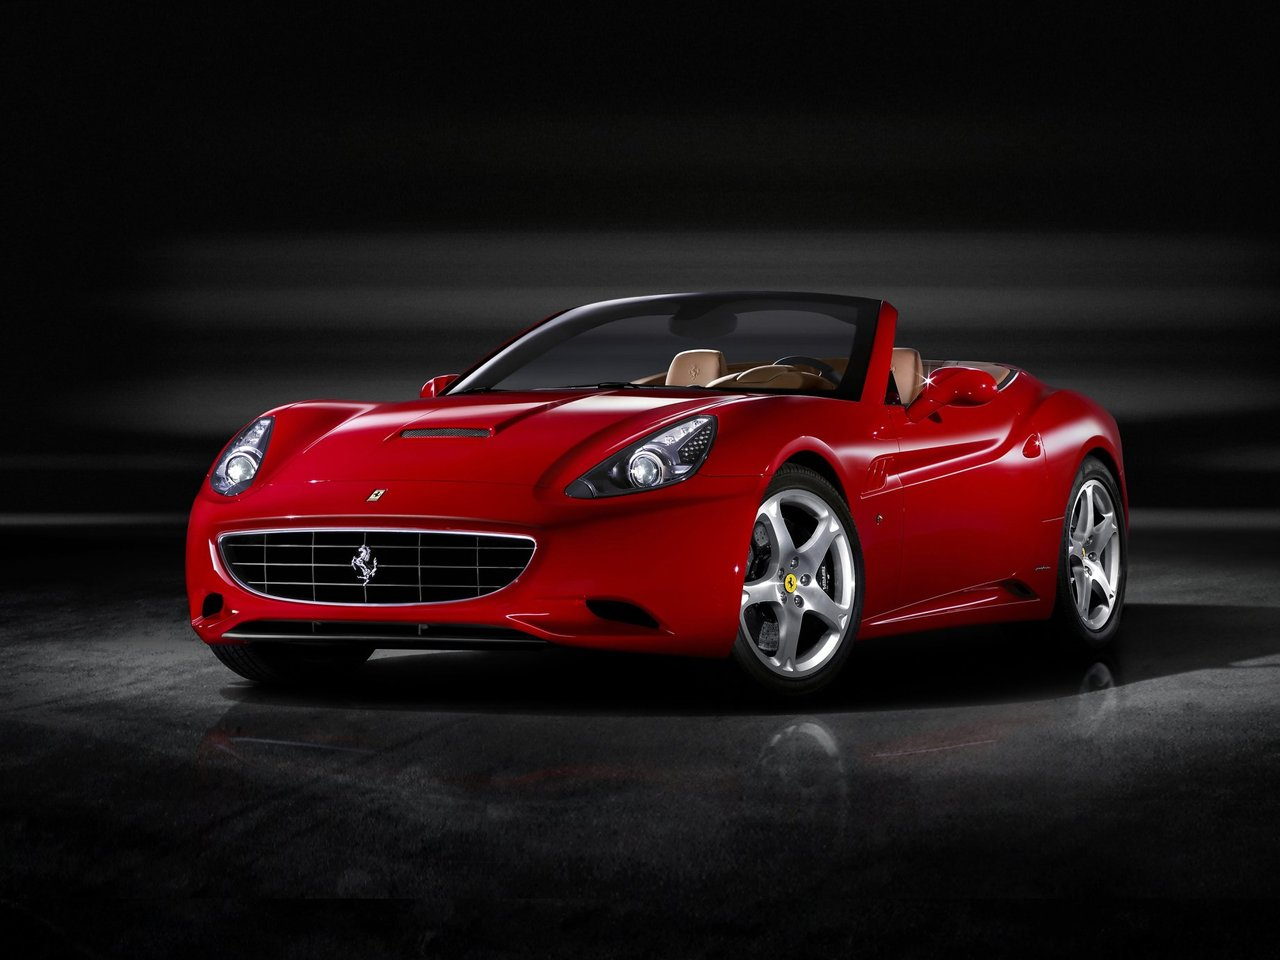 Автомобиль Ferrari California